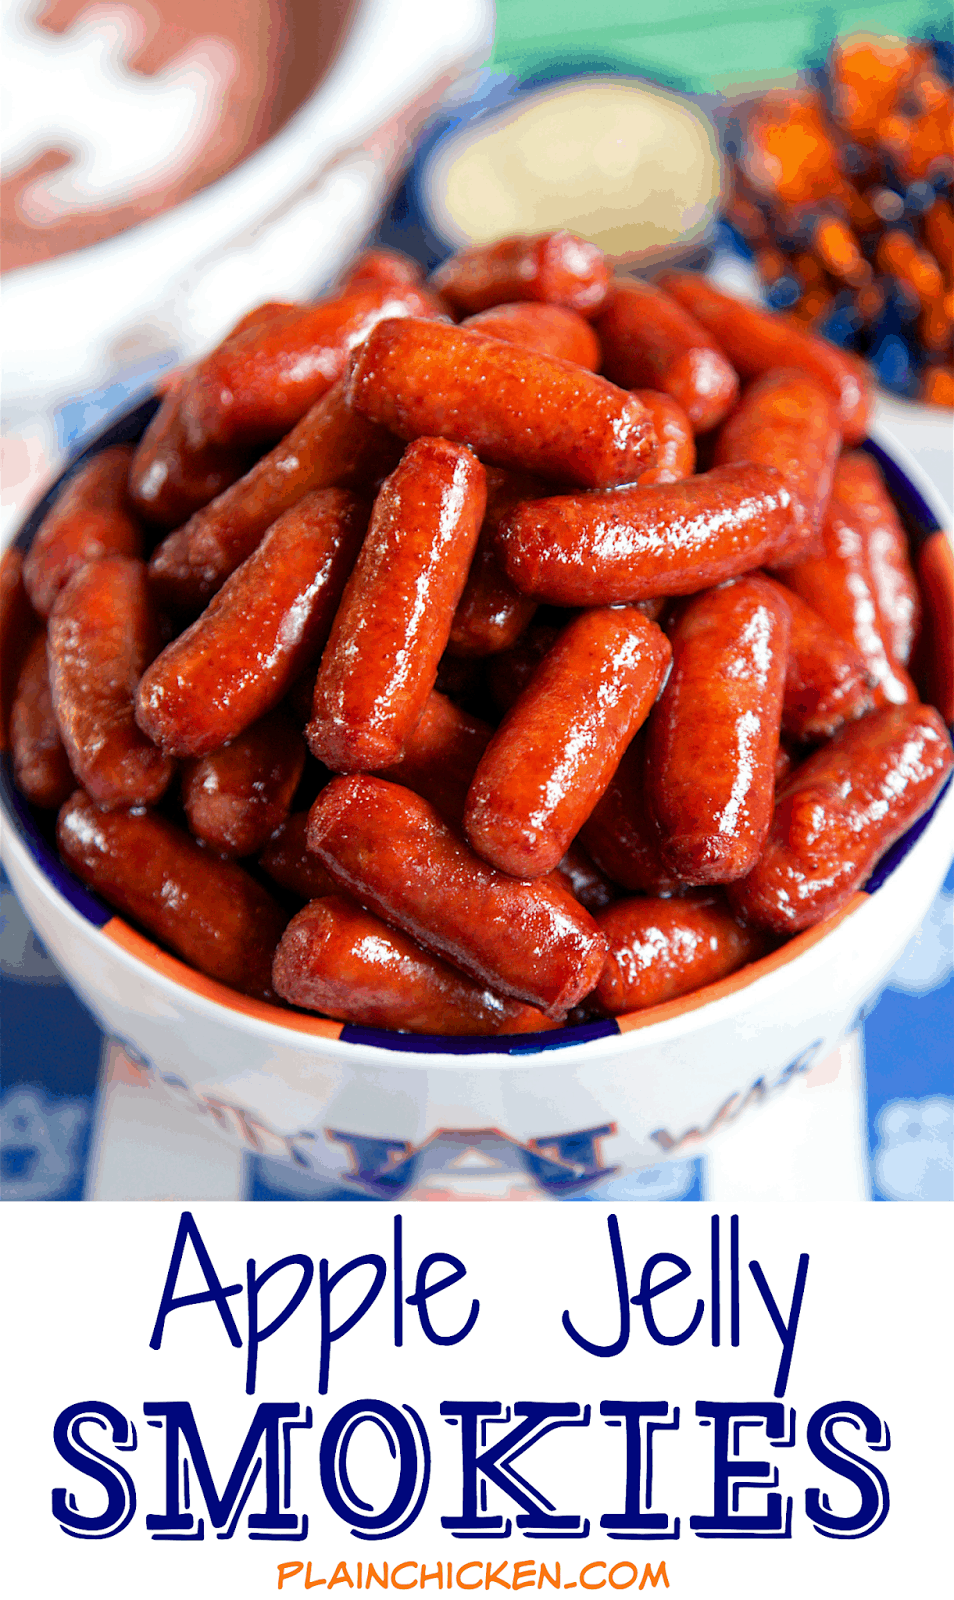 Apple Jelly Smokies - OMG! SO good! These are always a huge hit at parties! Only 3 ingredients! Can make on the stovetop or in the slow cooker. I always double the recipe - they don't last long!